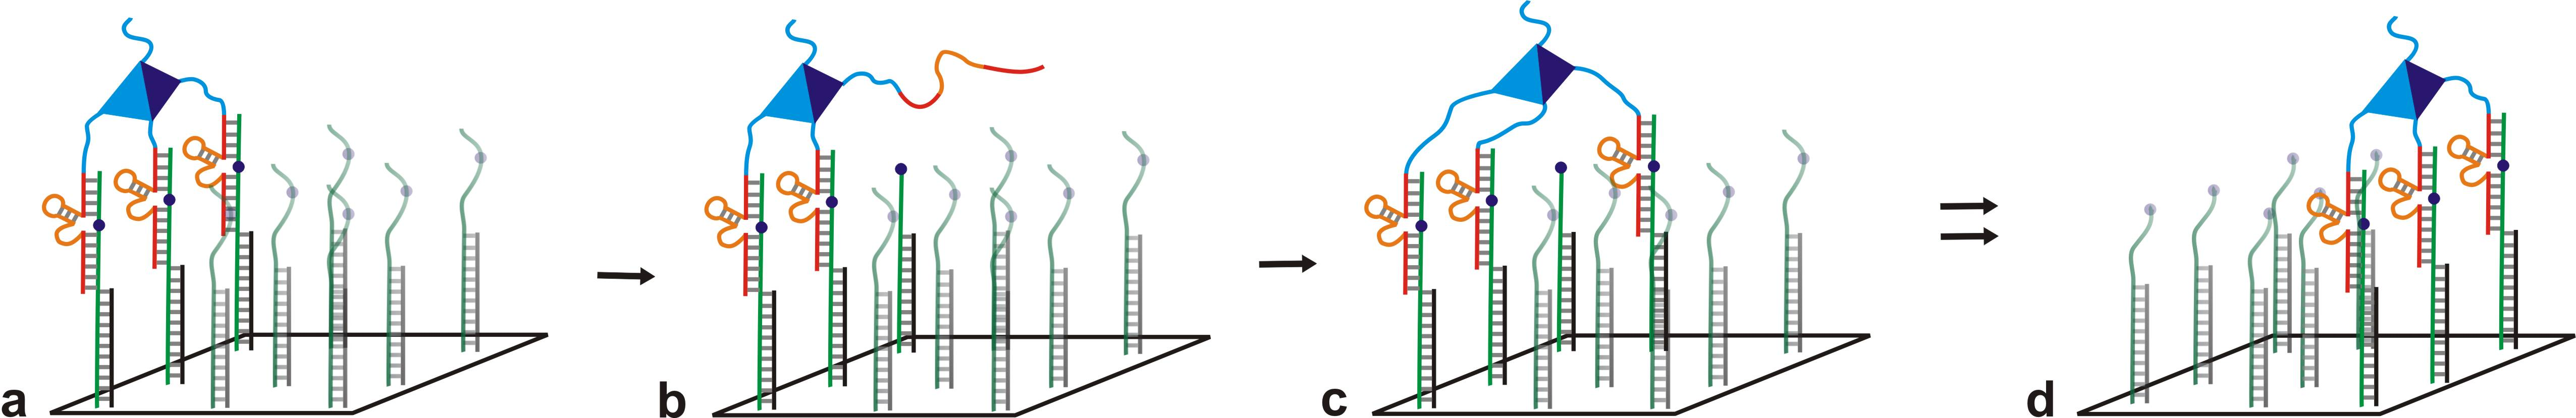 Figure 1. Spider walking over a surface a) The legs are bound to DNA strands. b) A leg dissociates from the strand it has just cleaved and is free to bind to another strand as shown in c. d) After a long period of time, the majority of the neighboring strands are cleaved and the spider migrates towards the full length strands.